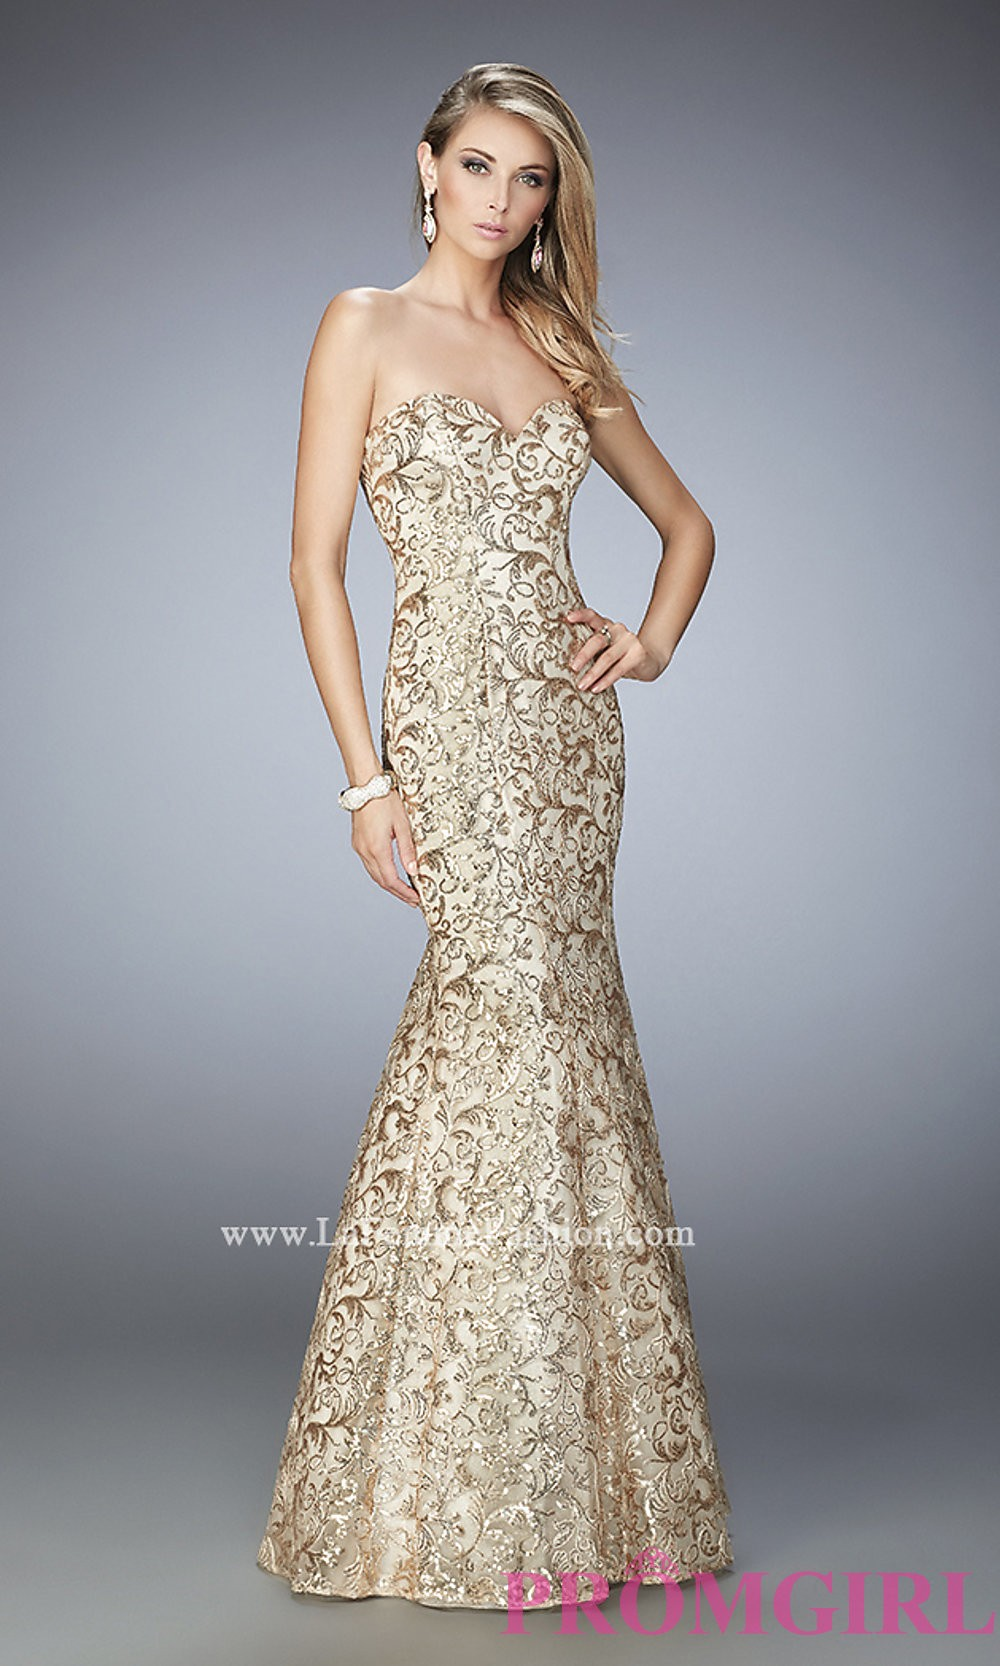 f6b1888df33 Gold Long Lace Strapless Prom Dress by La Femme - Discount ...